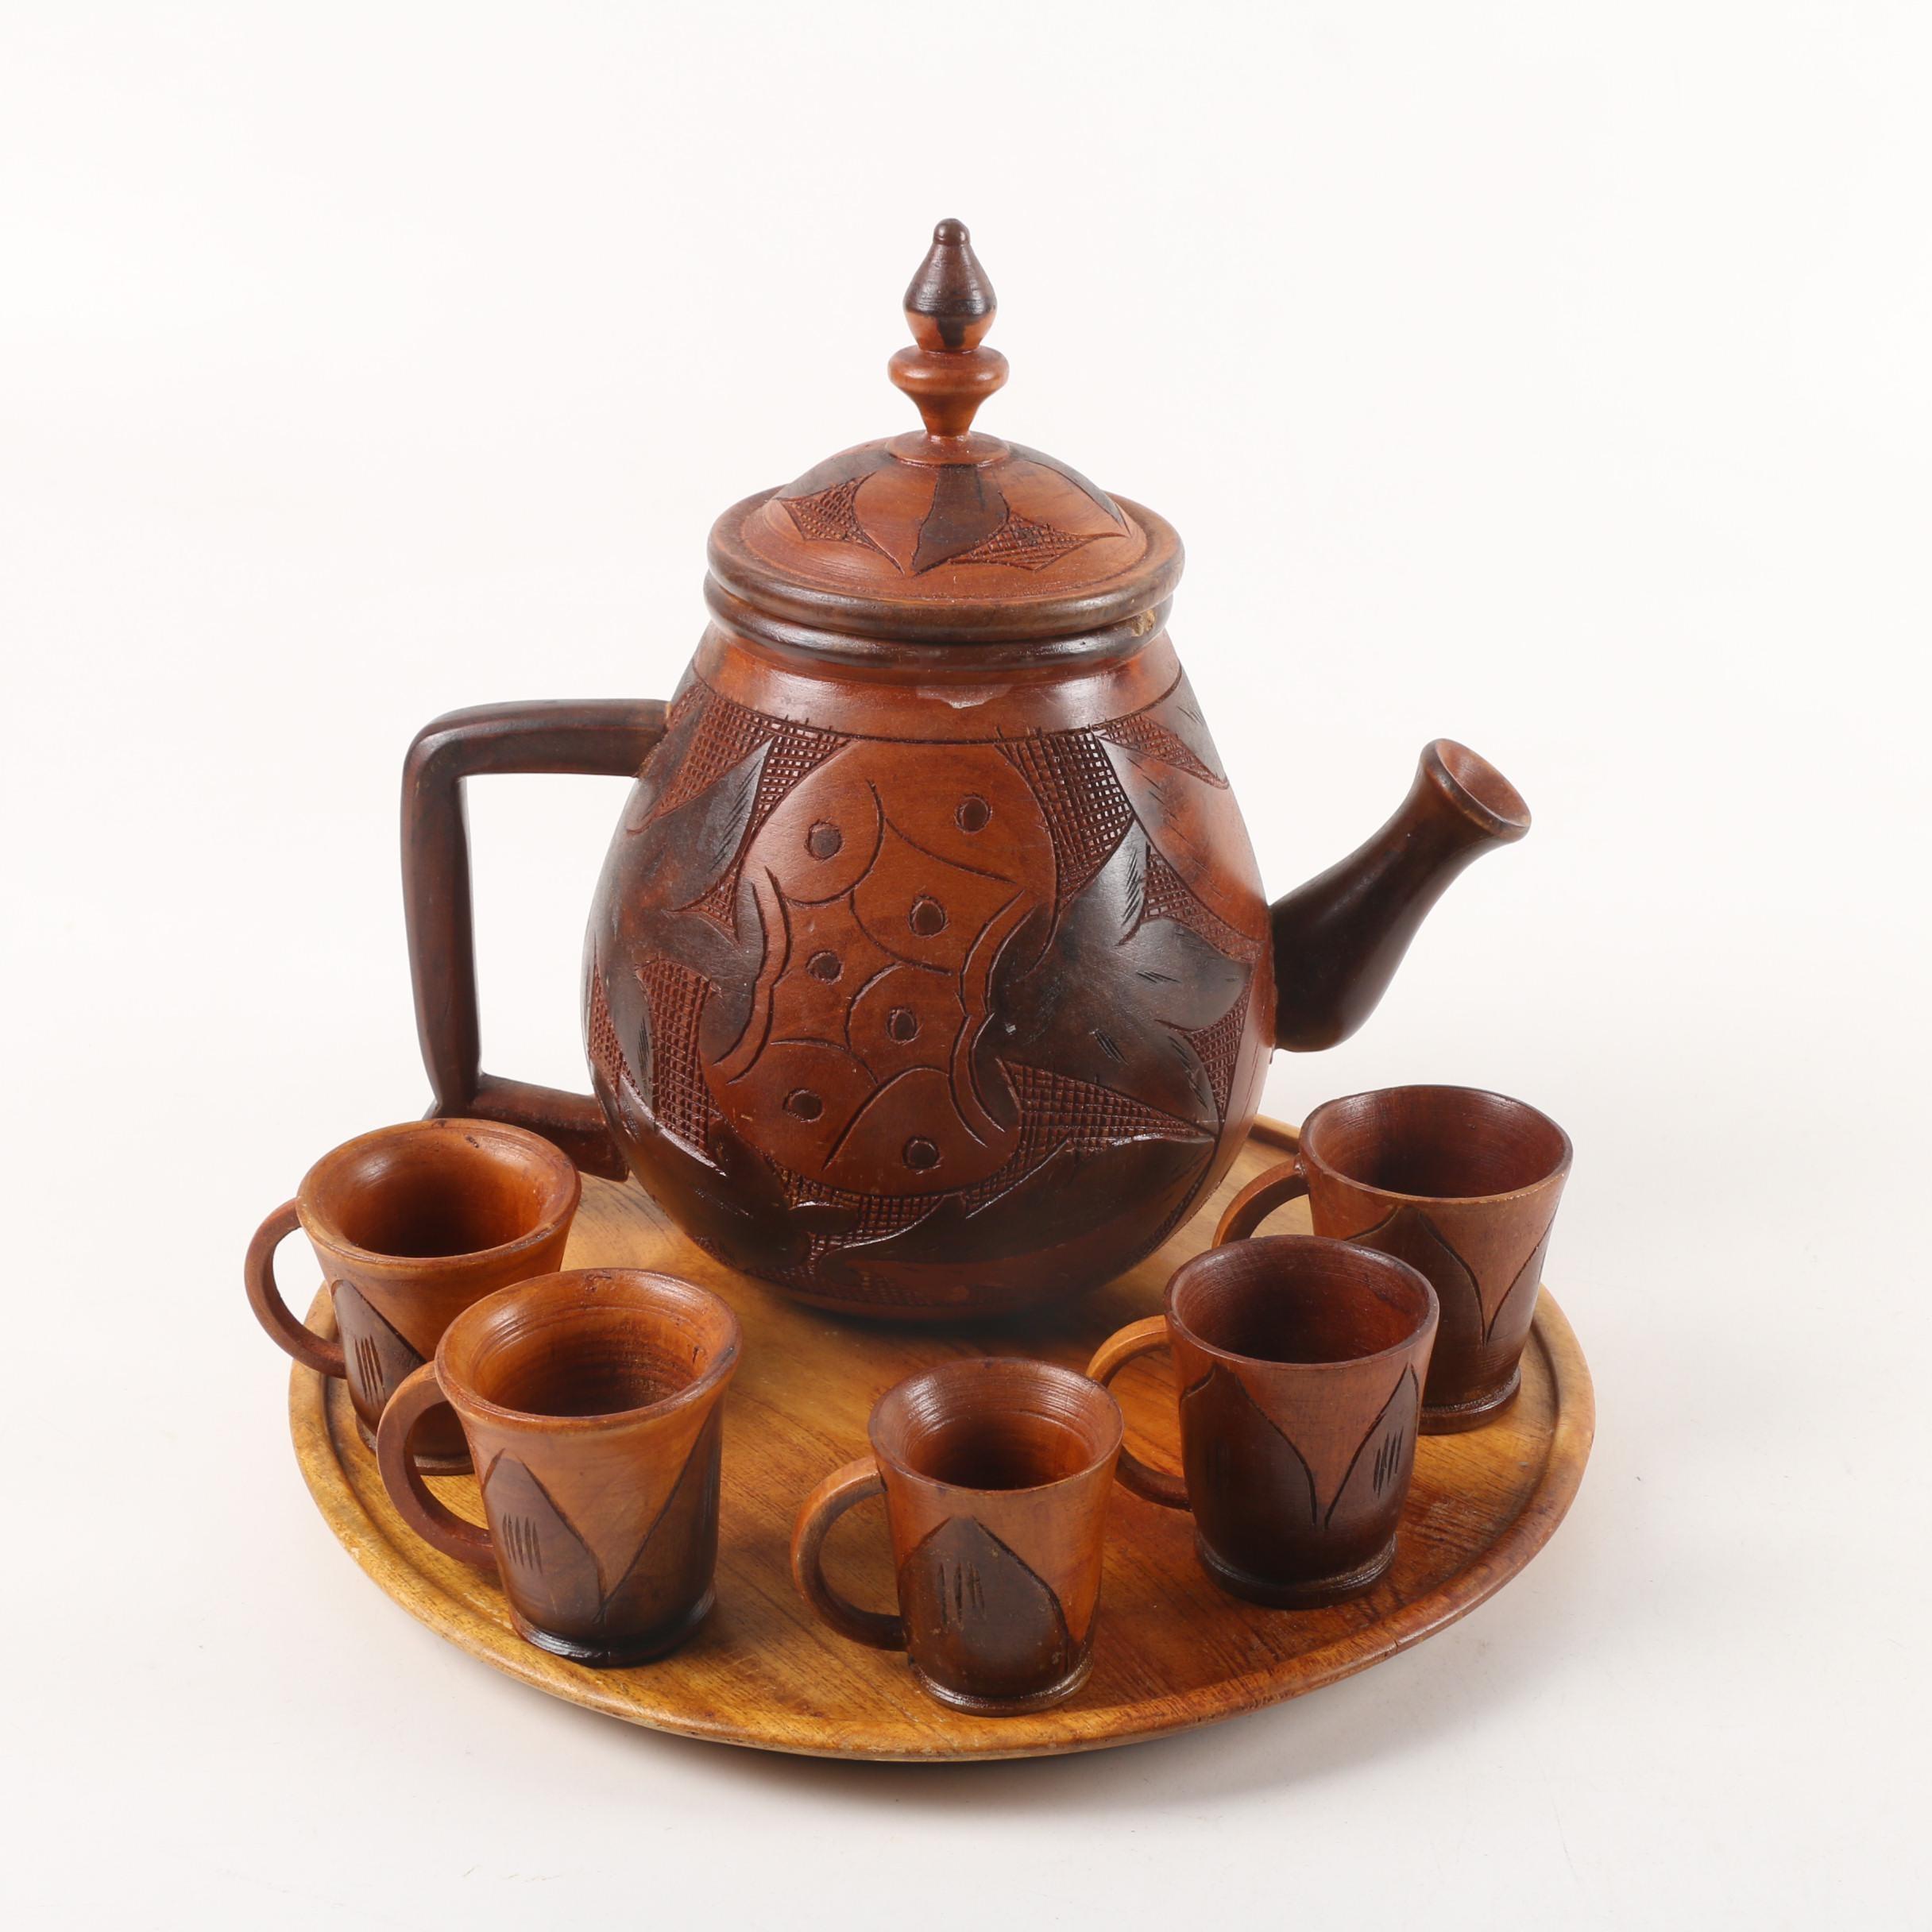 Carved Wood Coffee Set with Fish and Leaf Motif